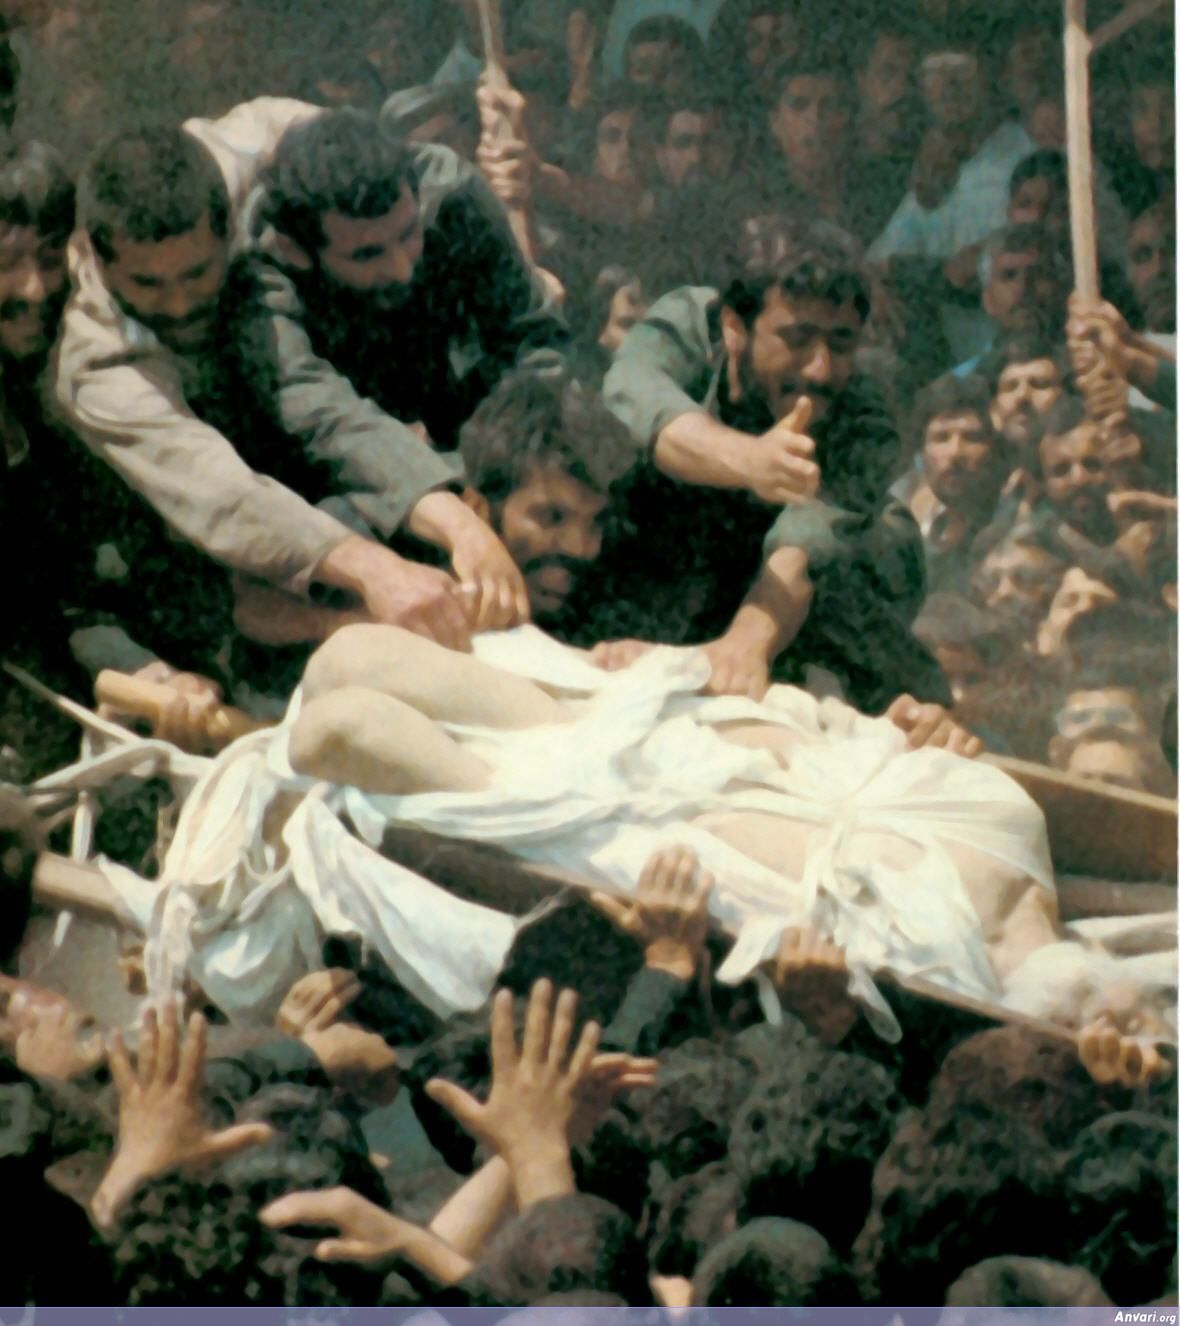 Khomeini Funeral - Tearing Up His Shroud - Khomeini Funeral - Tearing Up His Shroud